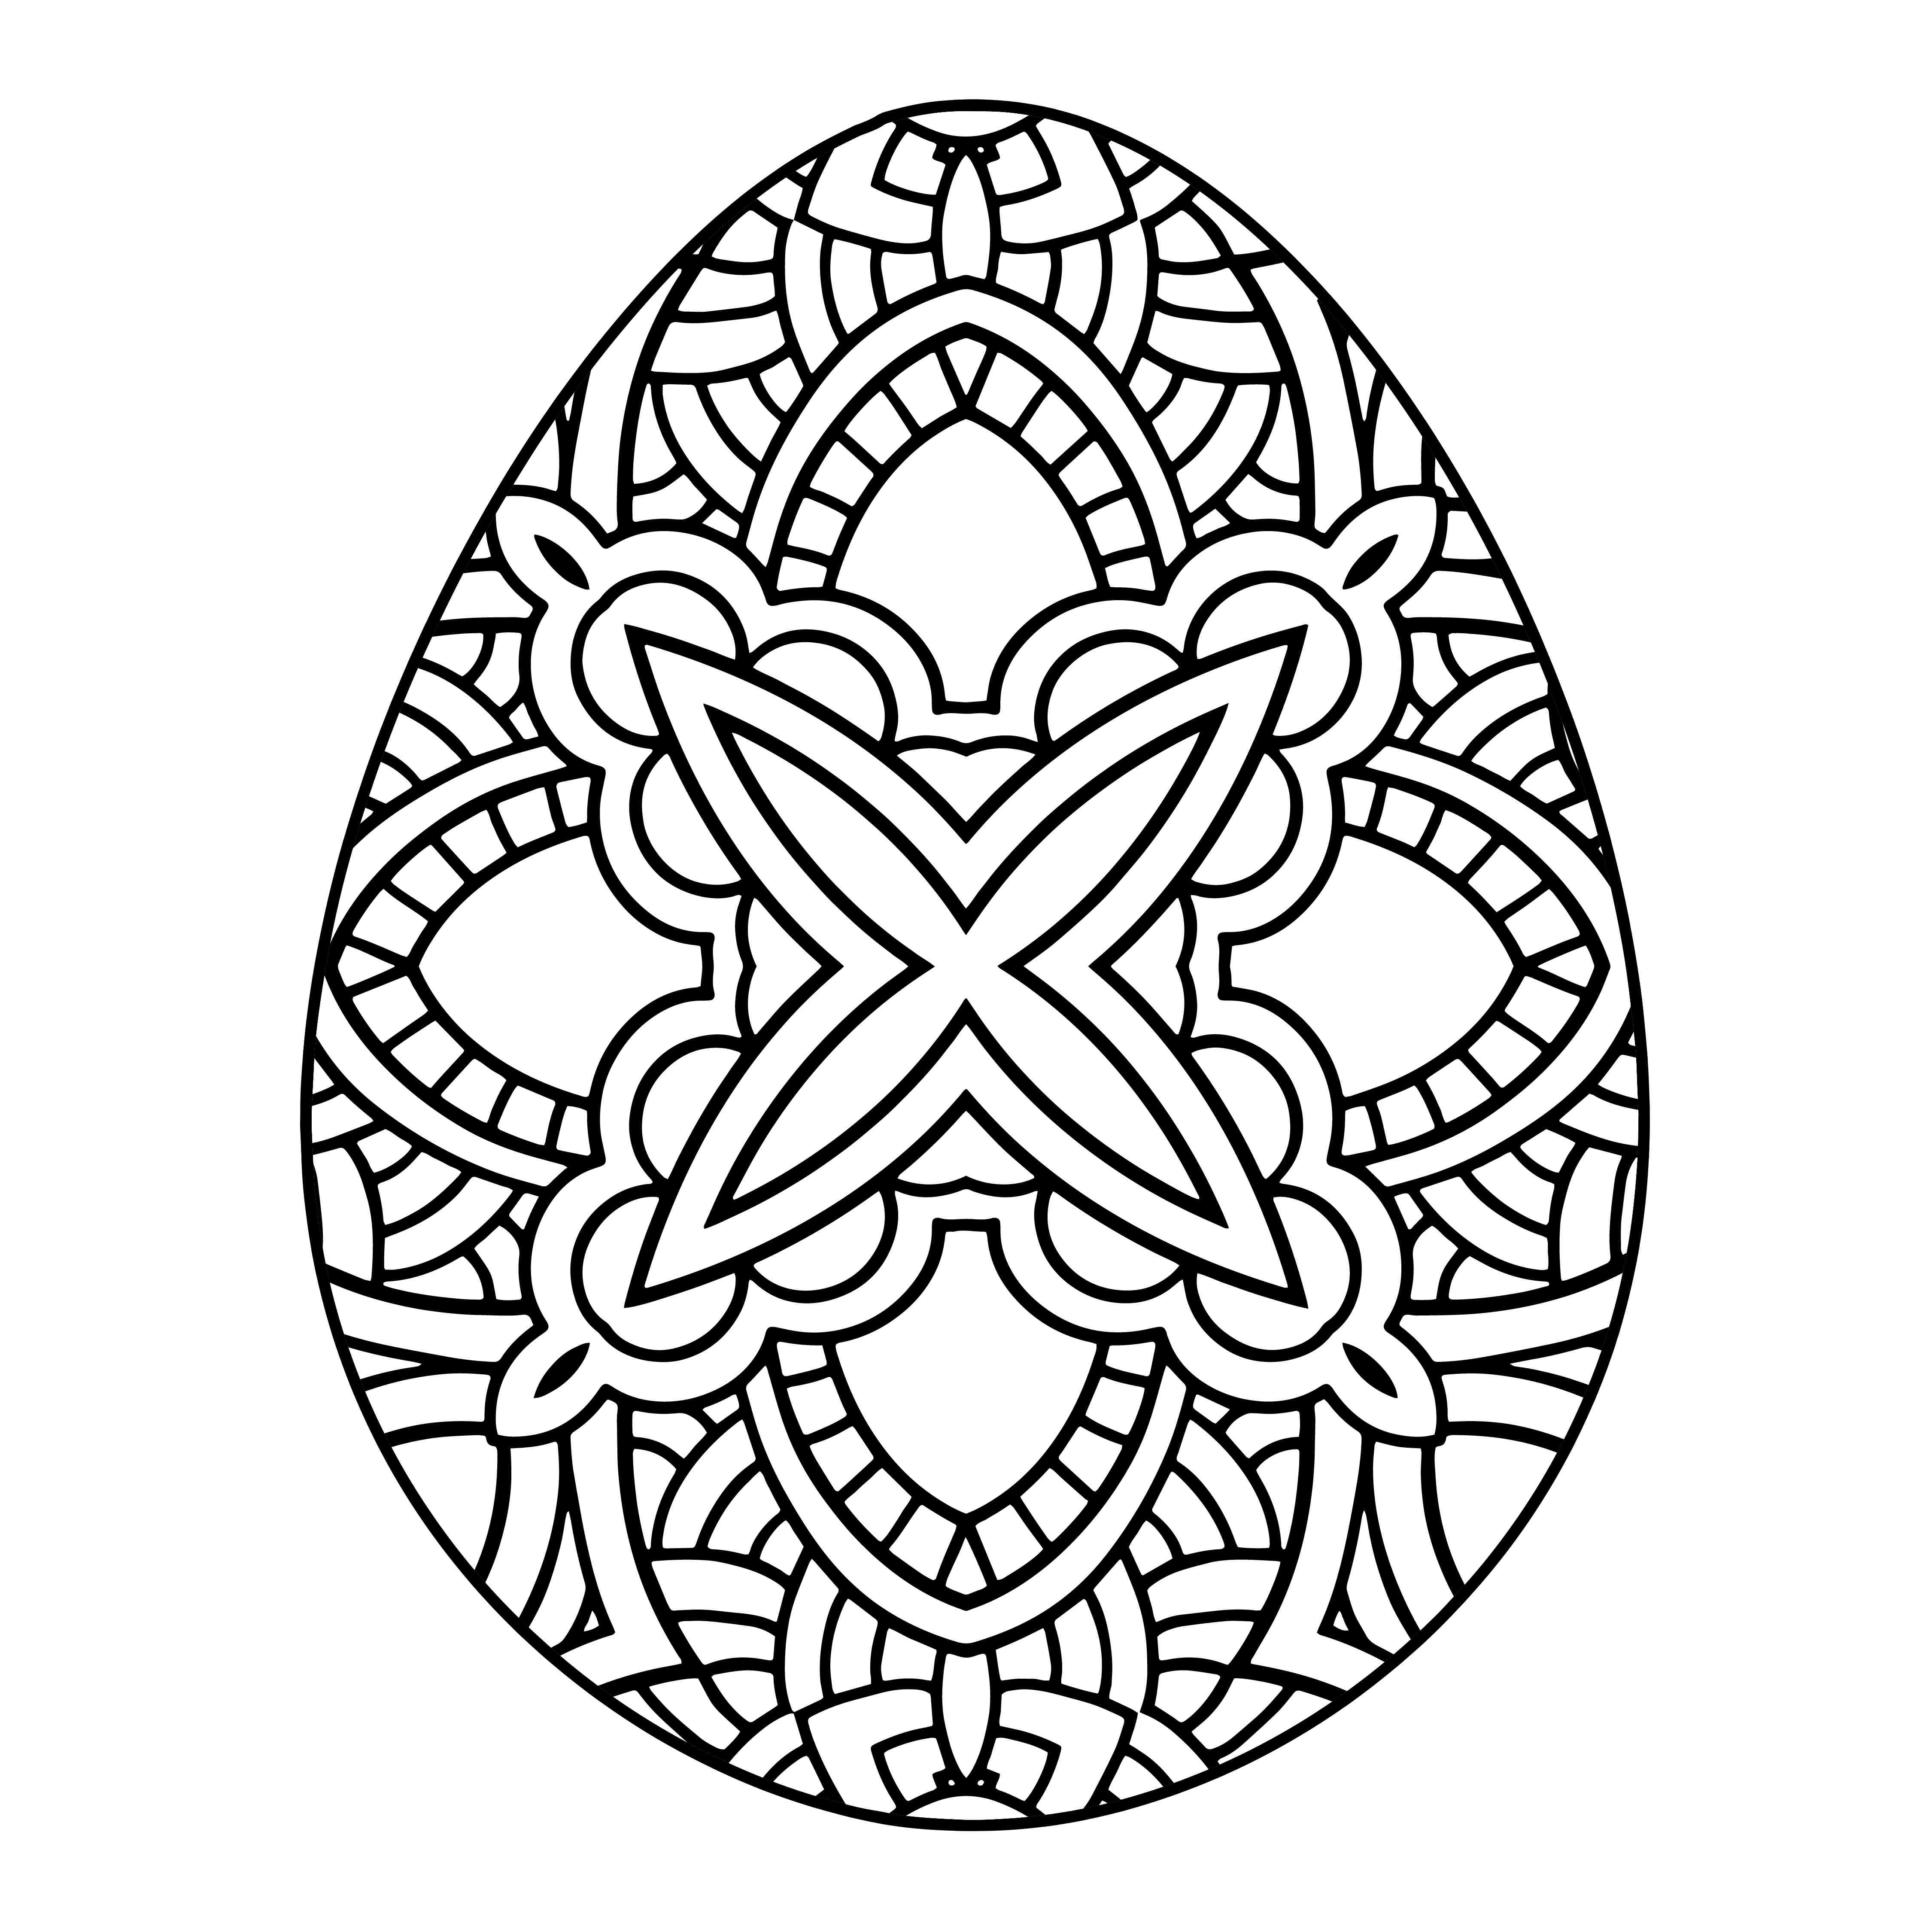 free easter egg coloring pages - vicspartan net78 net wp admin free printable easter egg coloring pages i11